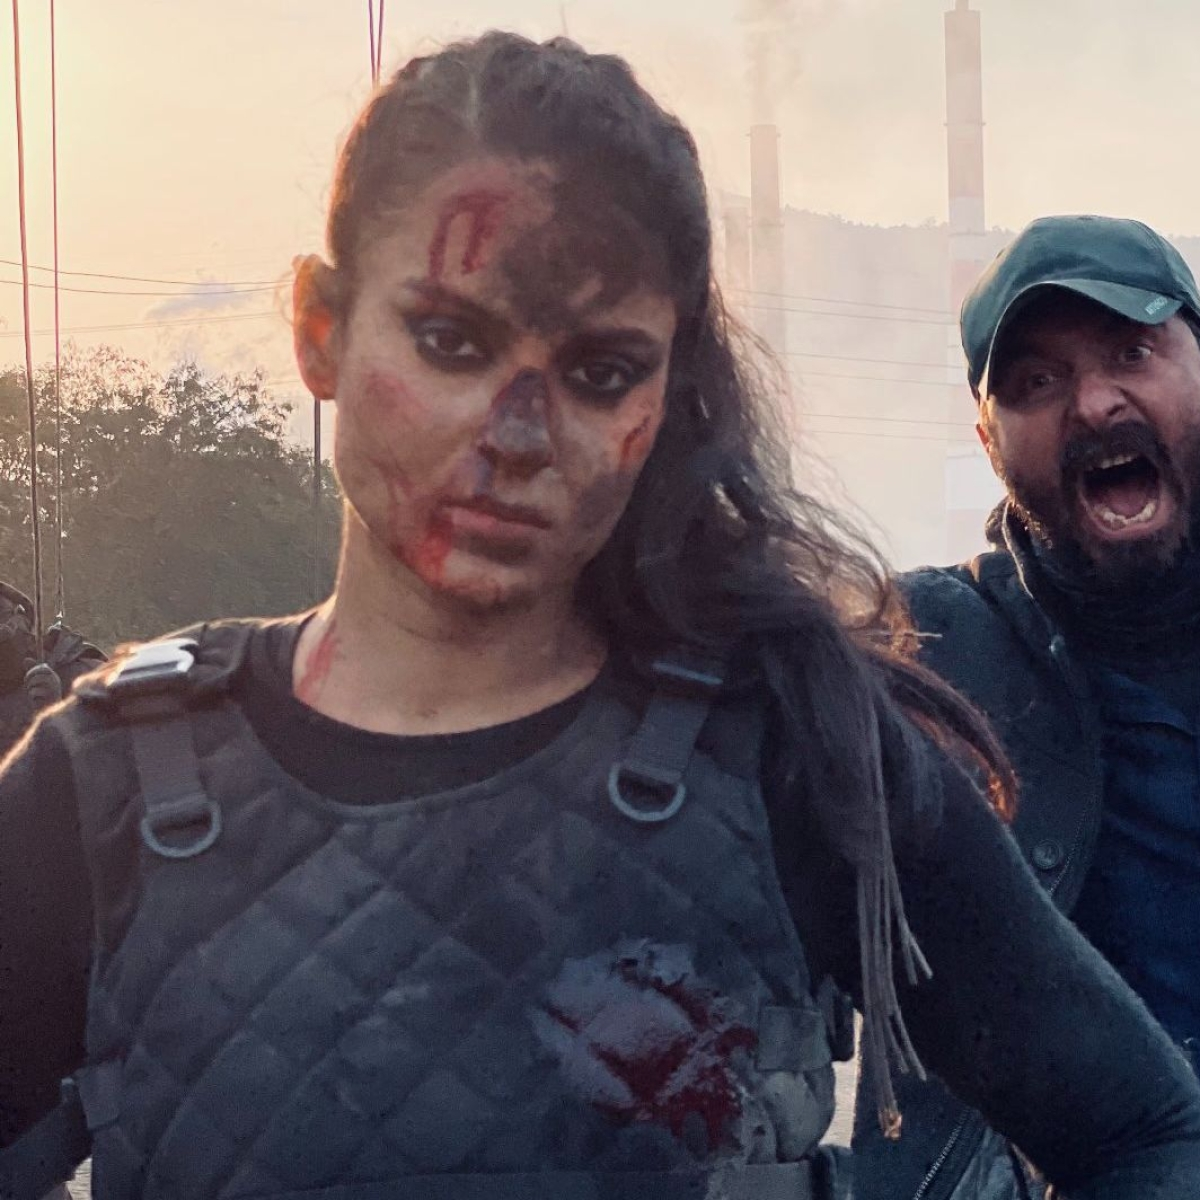 Bruised Kangana Ranaut says 'bring it on' after 14 hours of non-stop action shoot for 'Dhaakad'